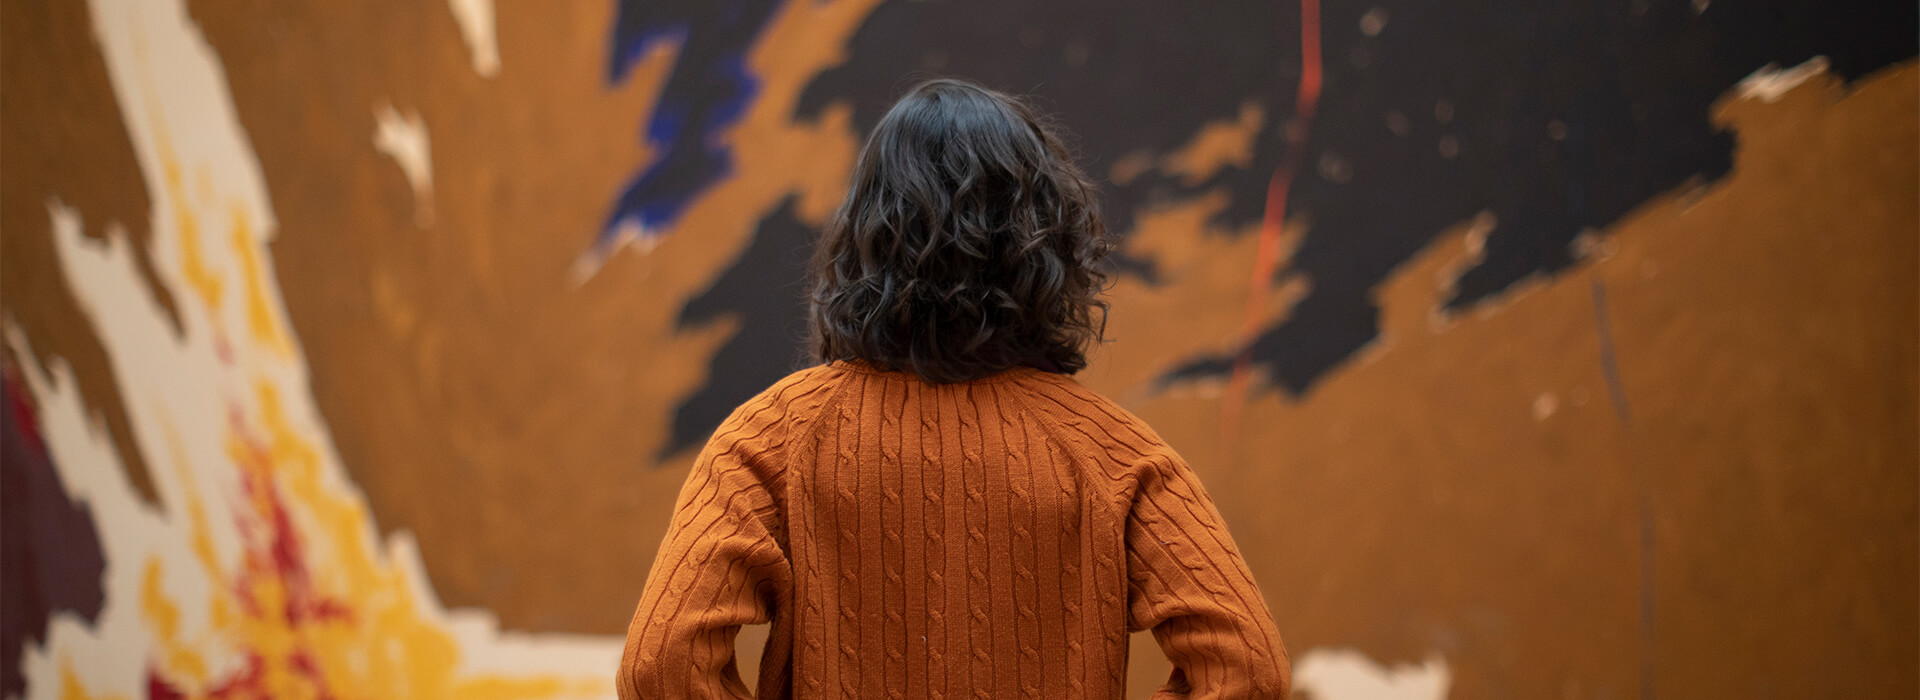 Woman wearing an orange sweater looks up at a large abstract painting with brown, yellow red, blue, black, and orange paint